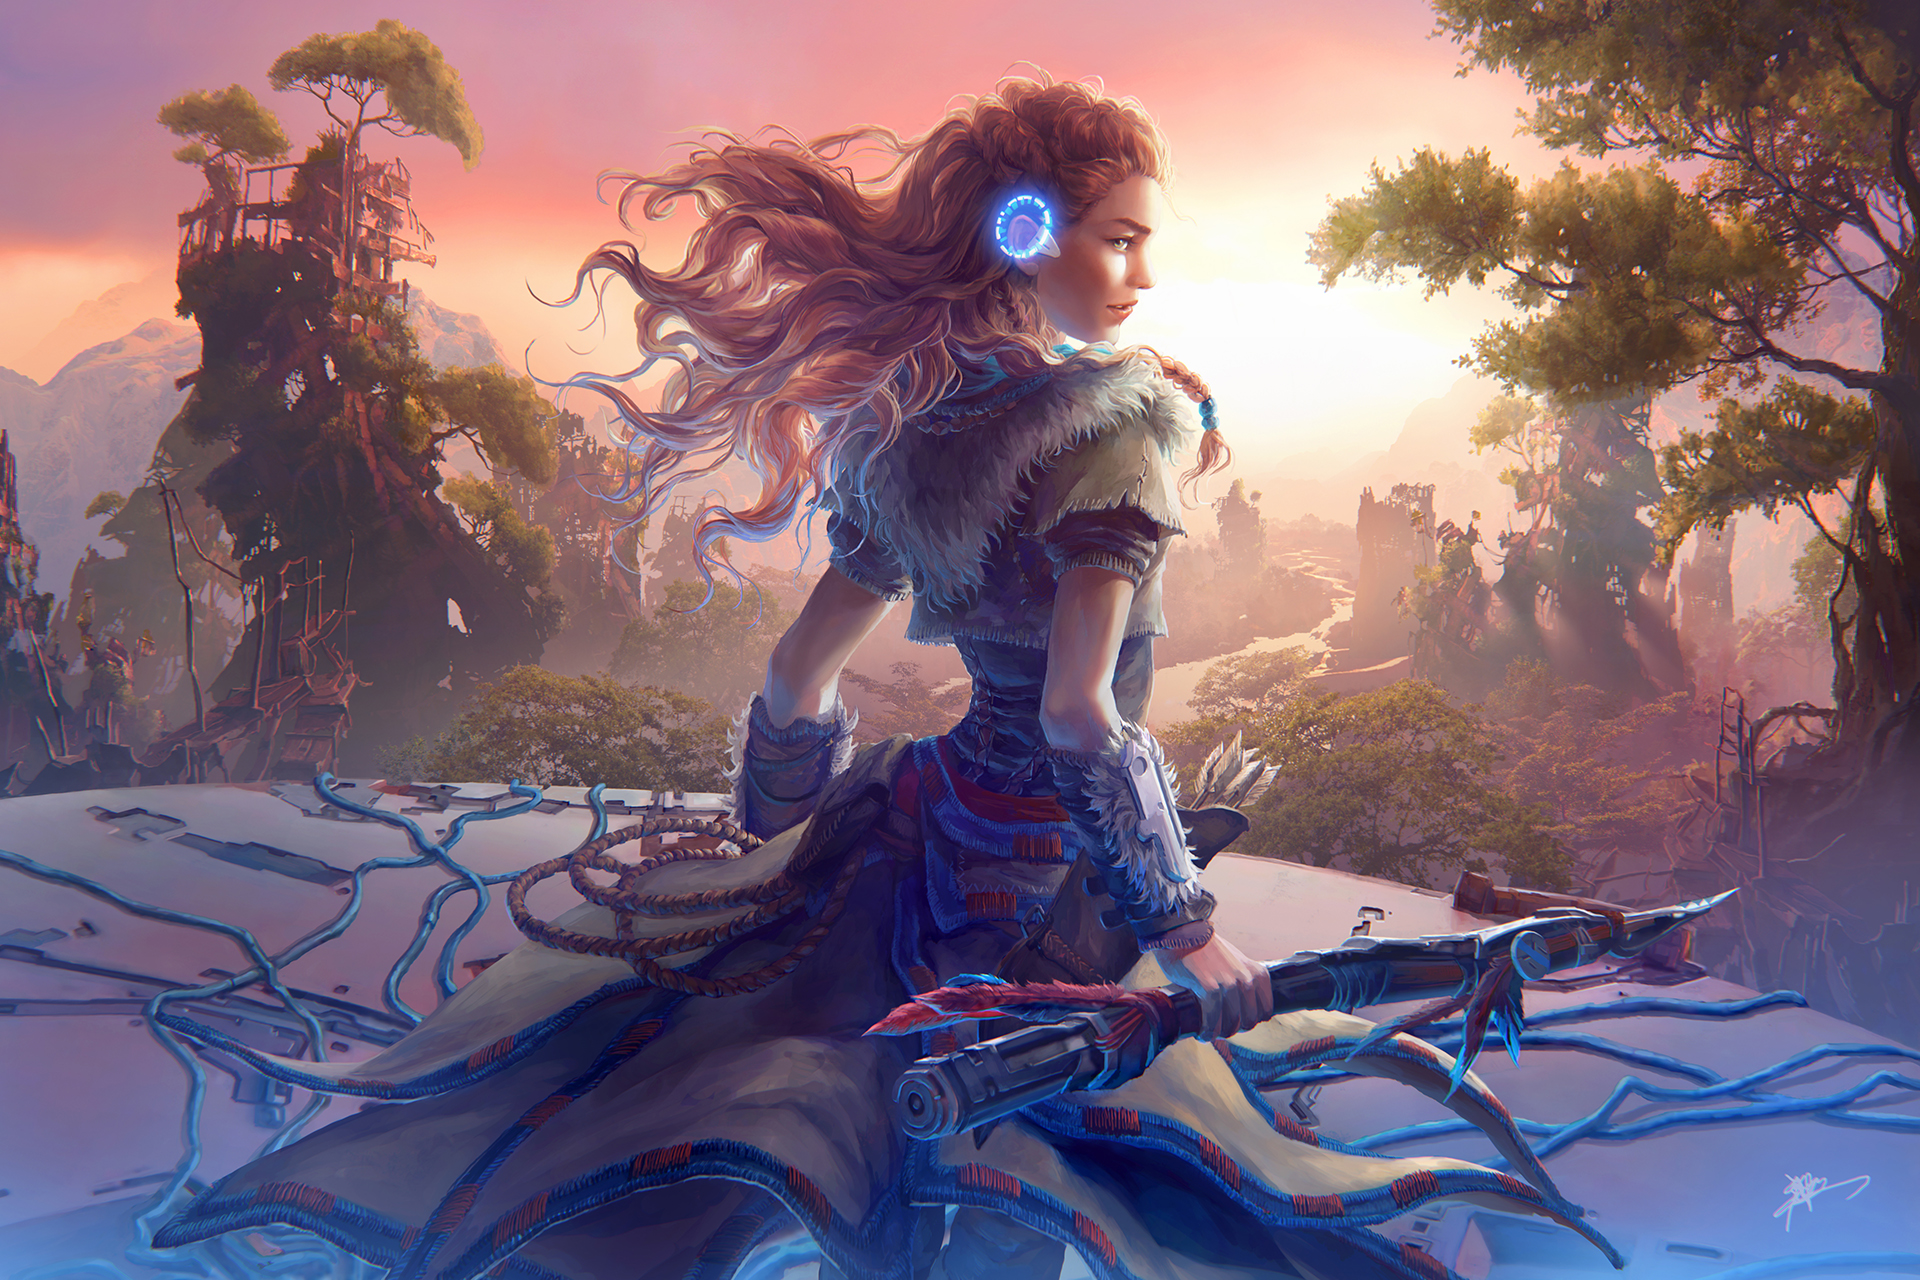 Aloy horizon zero dawn game artwork hd games 4k wallpapers images backgrounds photos and - Wallpaper game hd android ...